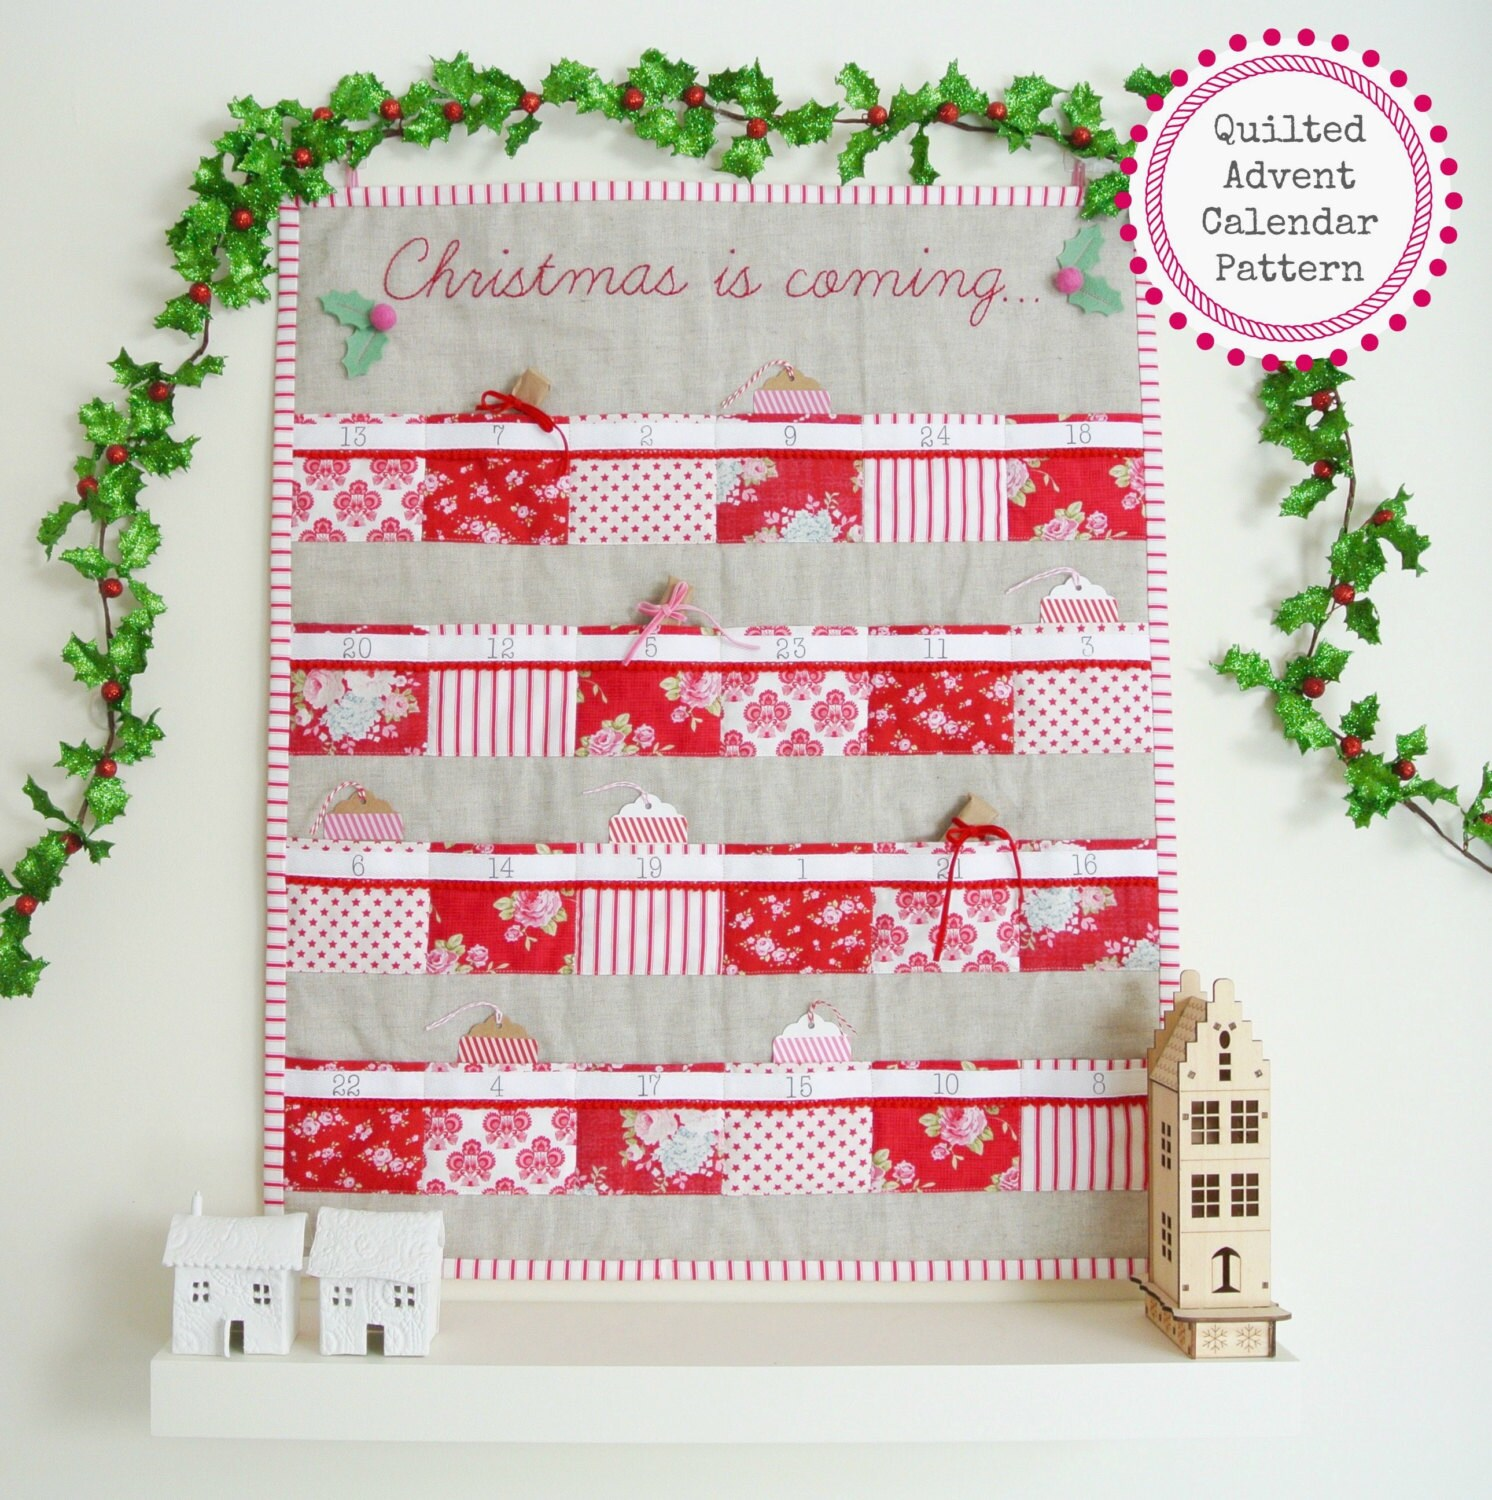 pattern quilted advent calendar with 24 pockets pdf pattern